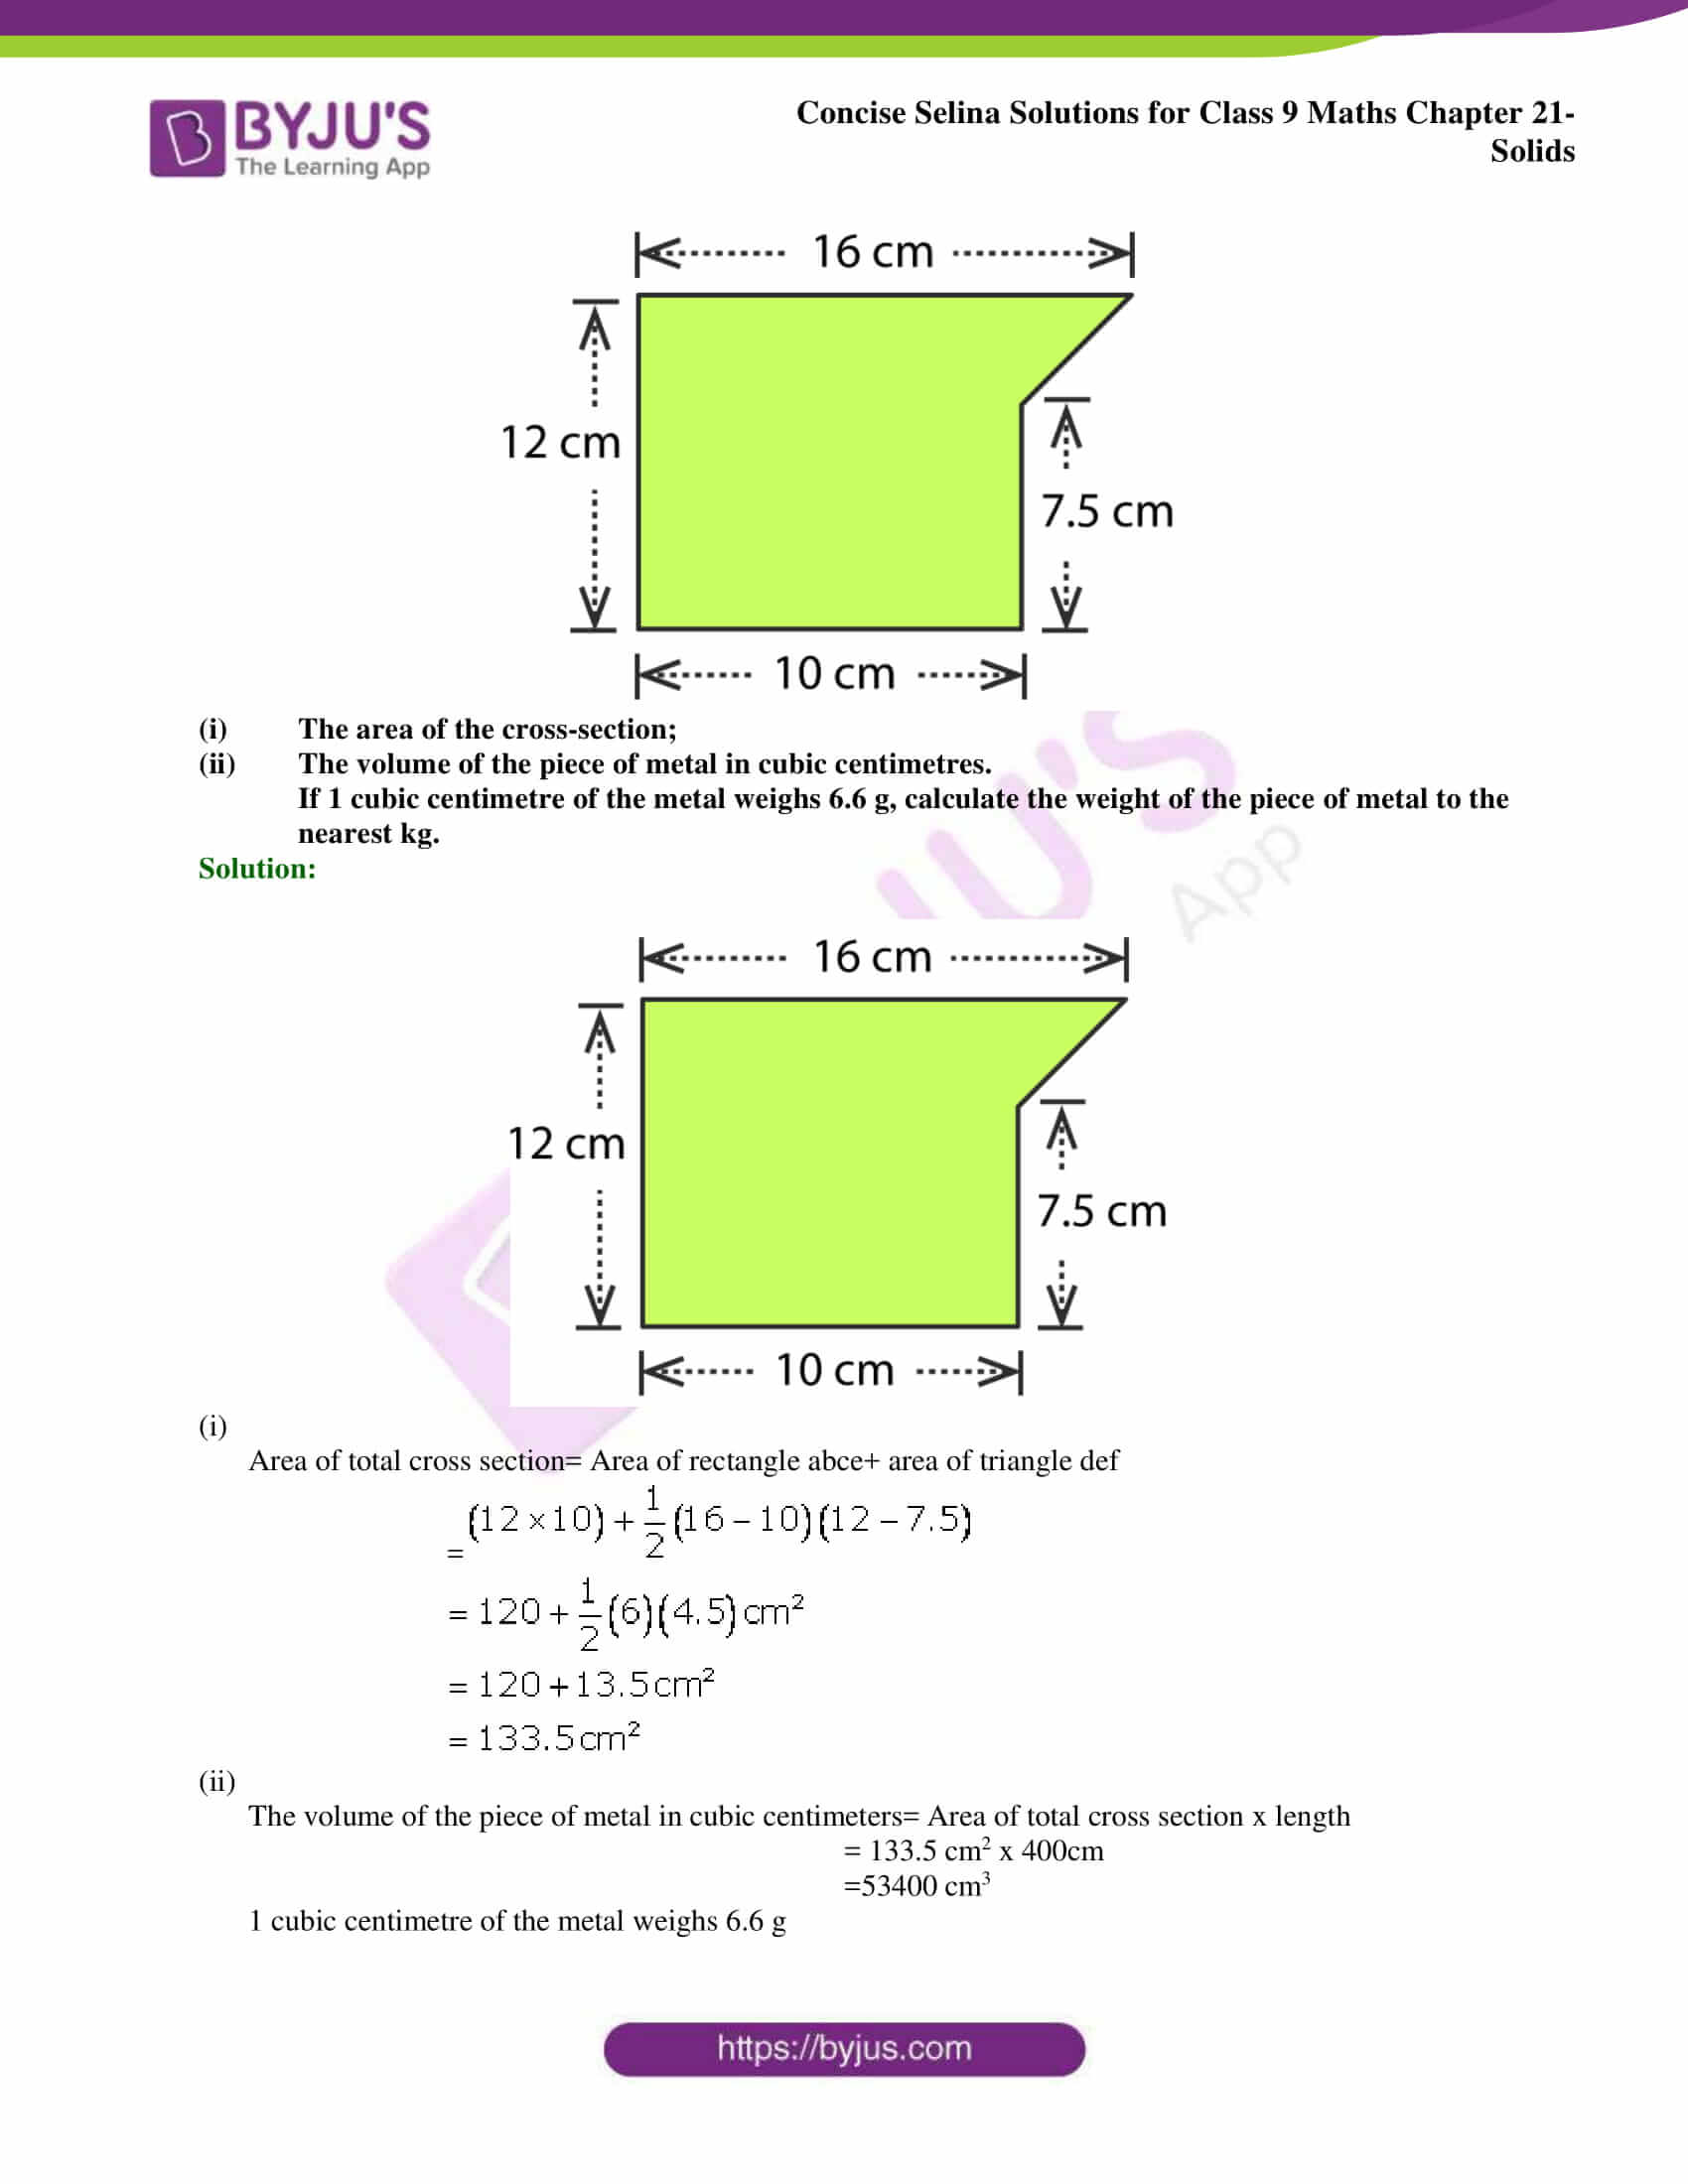 Concise Selina Solutions Class 9 Maths Chapter 21 Solids part 10